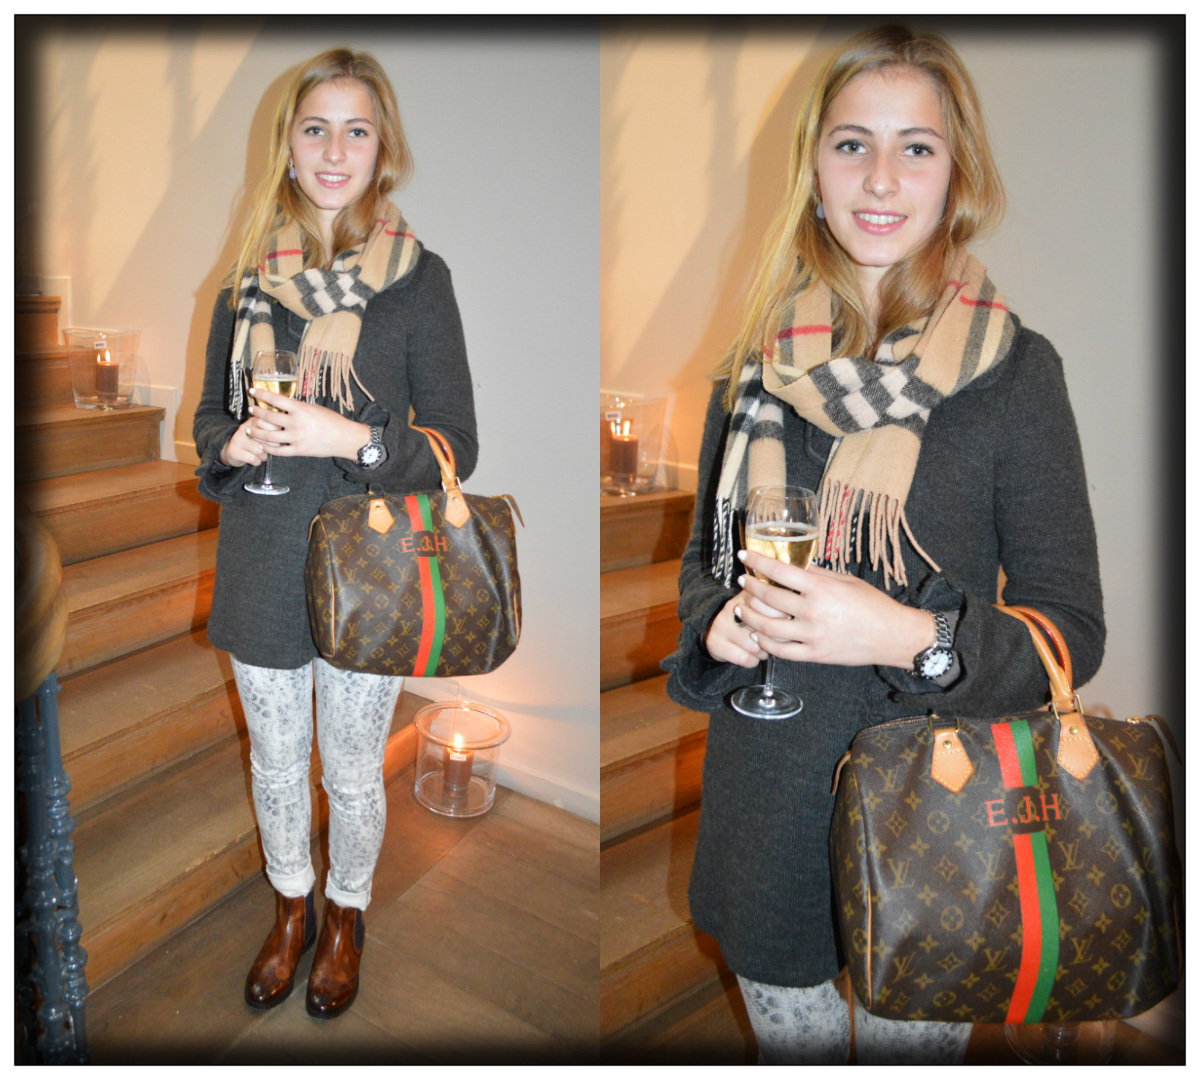 Hamburg, Events, ABCLOUNGE, Streetstyle, Mariposa Fashion Blog, Trends-3